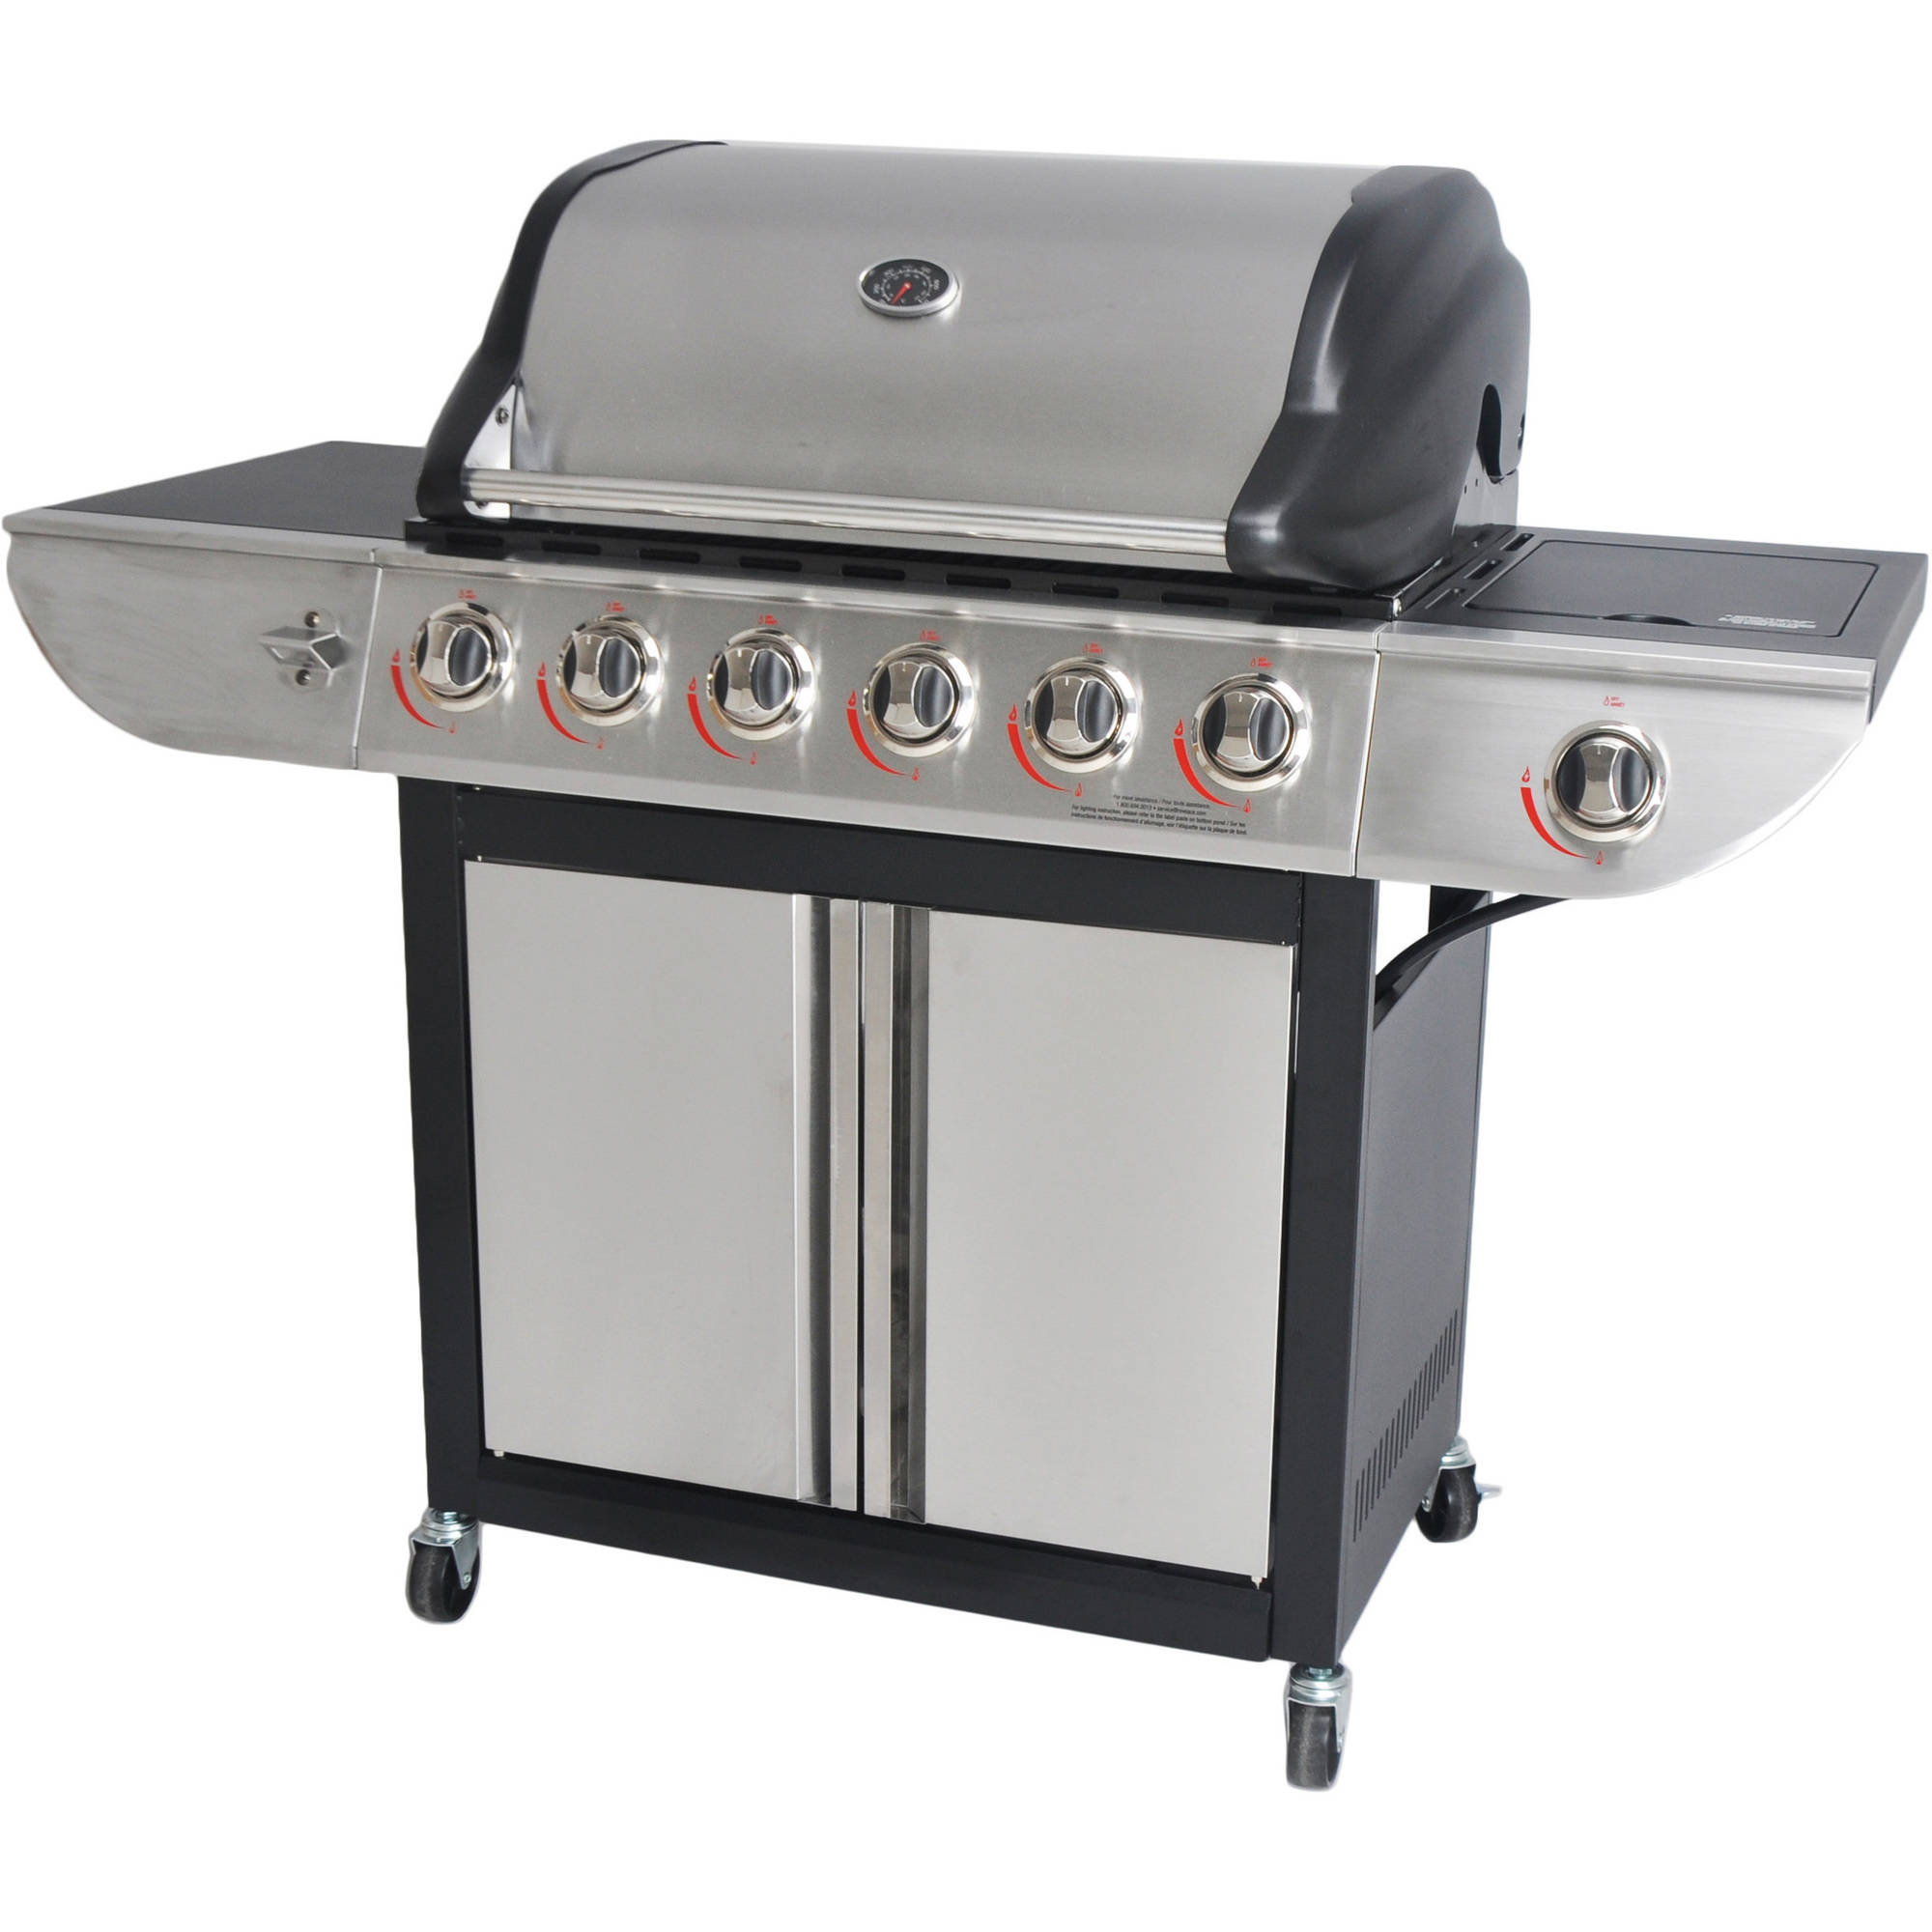 RevoAce 6-Burner LP Gas Grill with Side Burner, Stainless Steel by REVOACE INC LIMITED